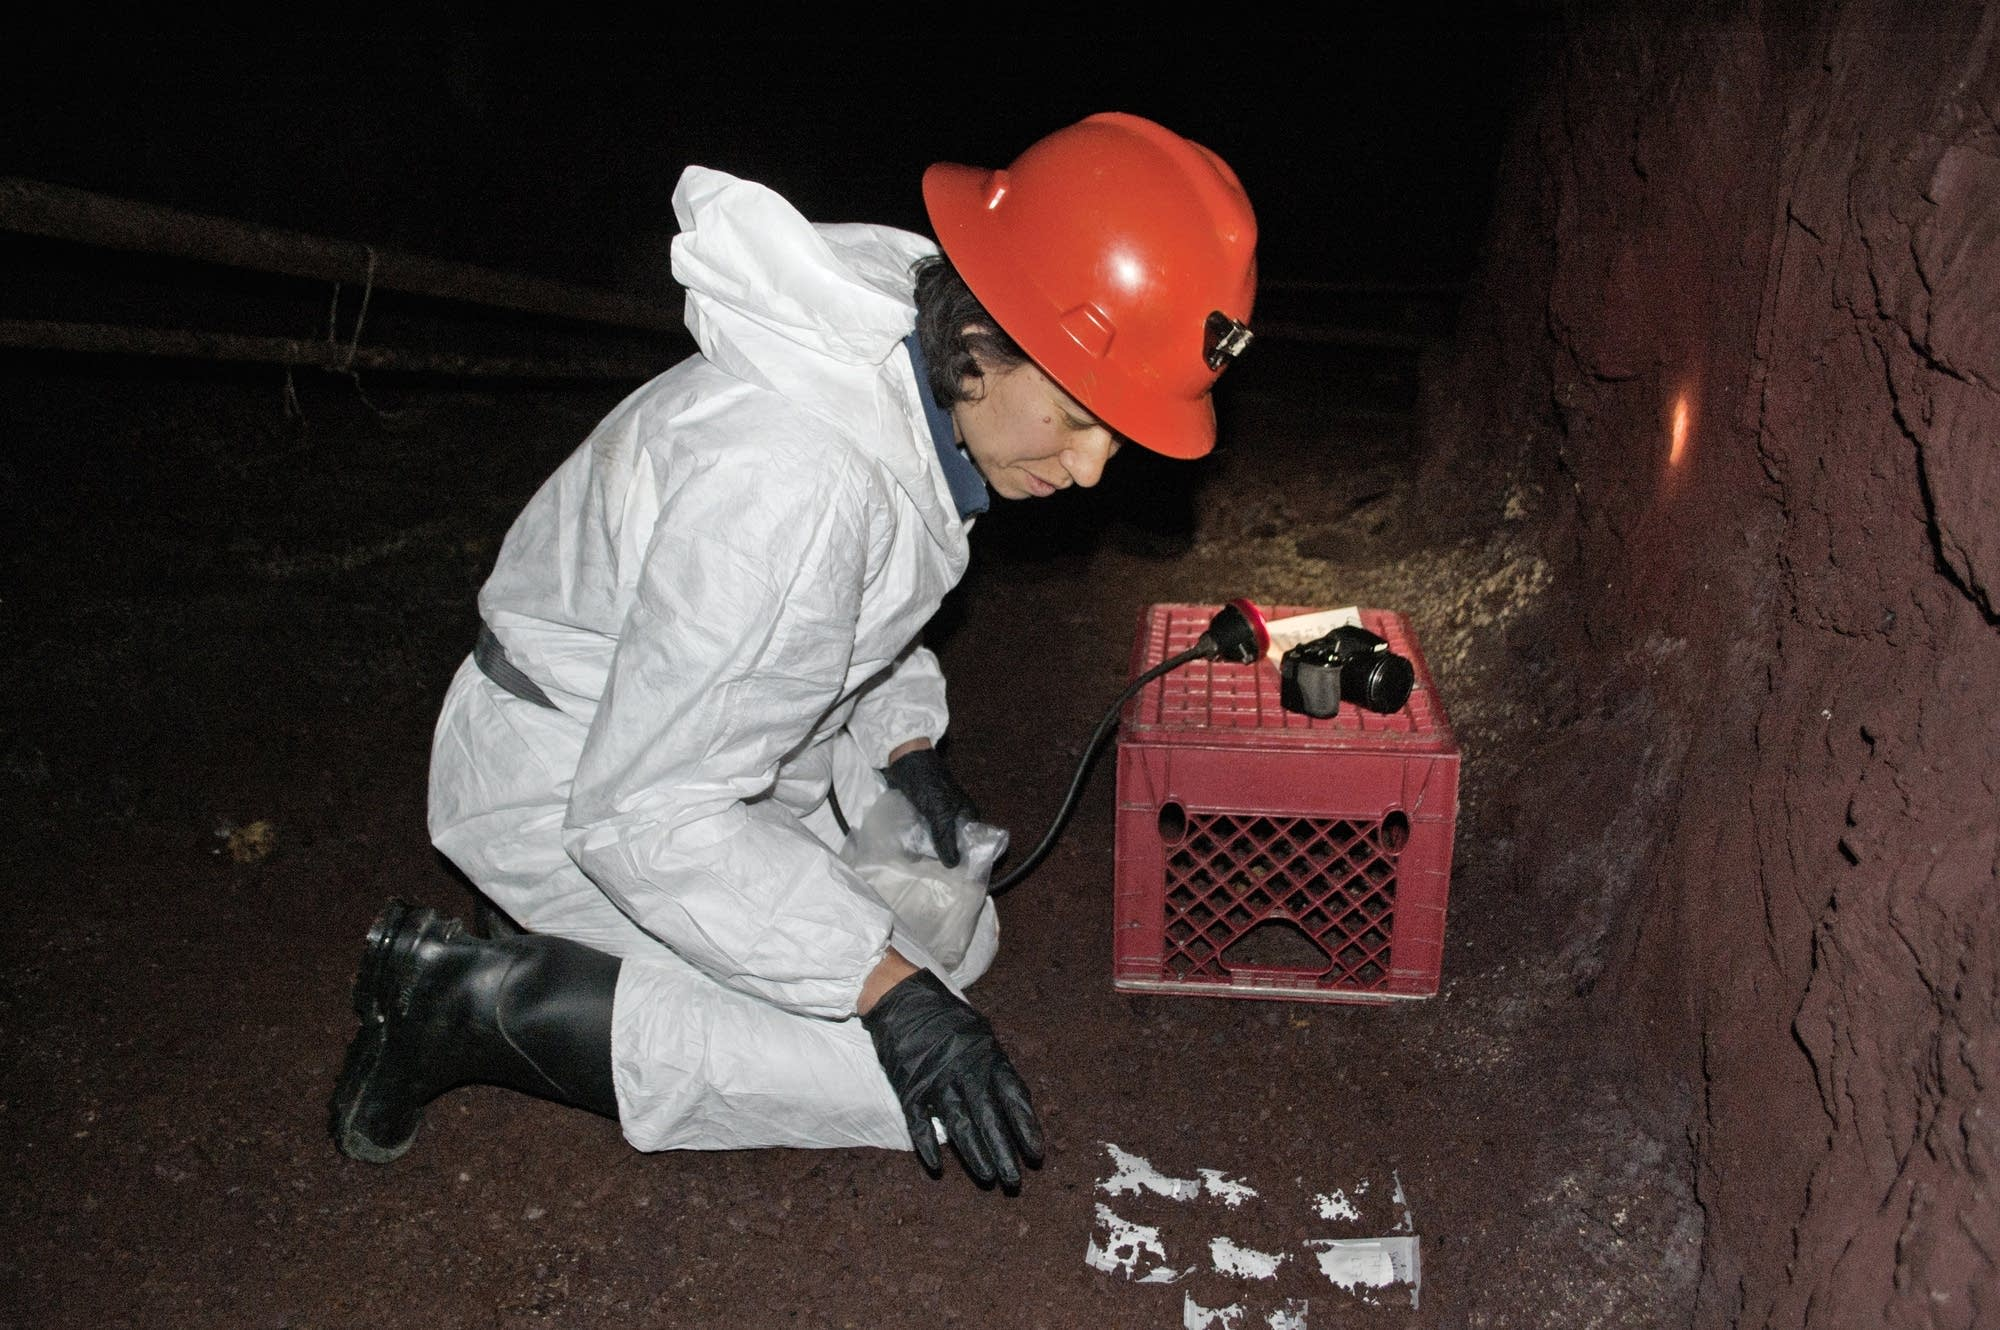 U of M scientist Christine Salomon checks fungus samples in the mine.